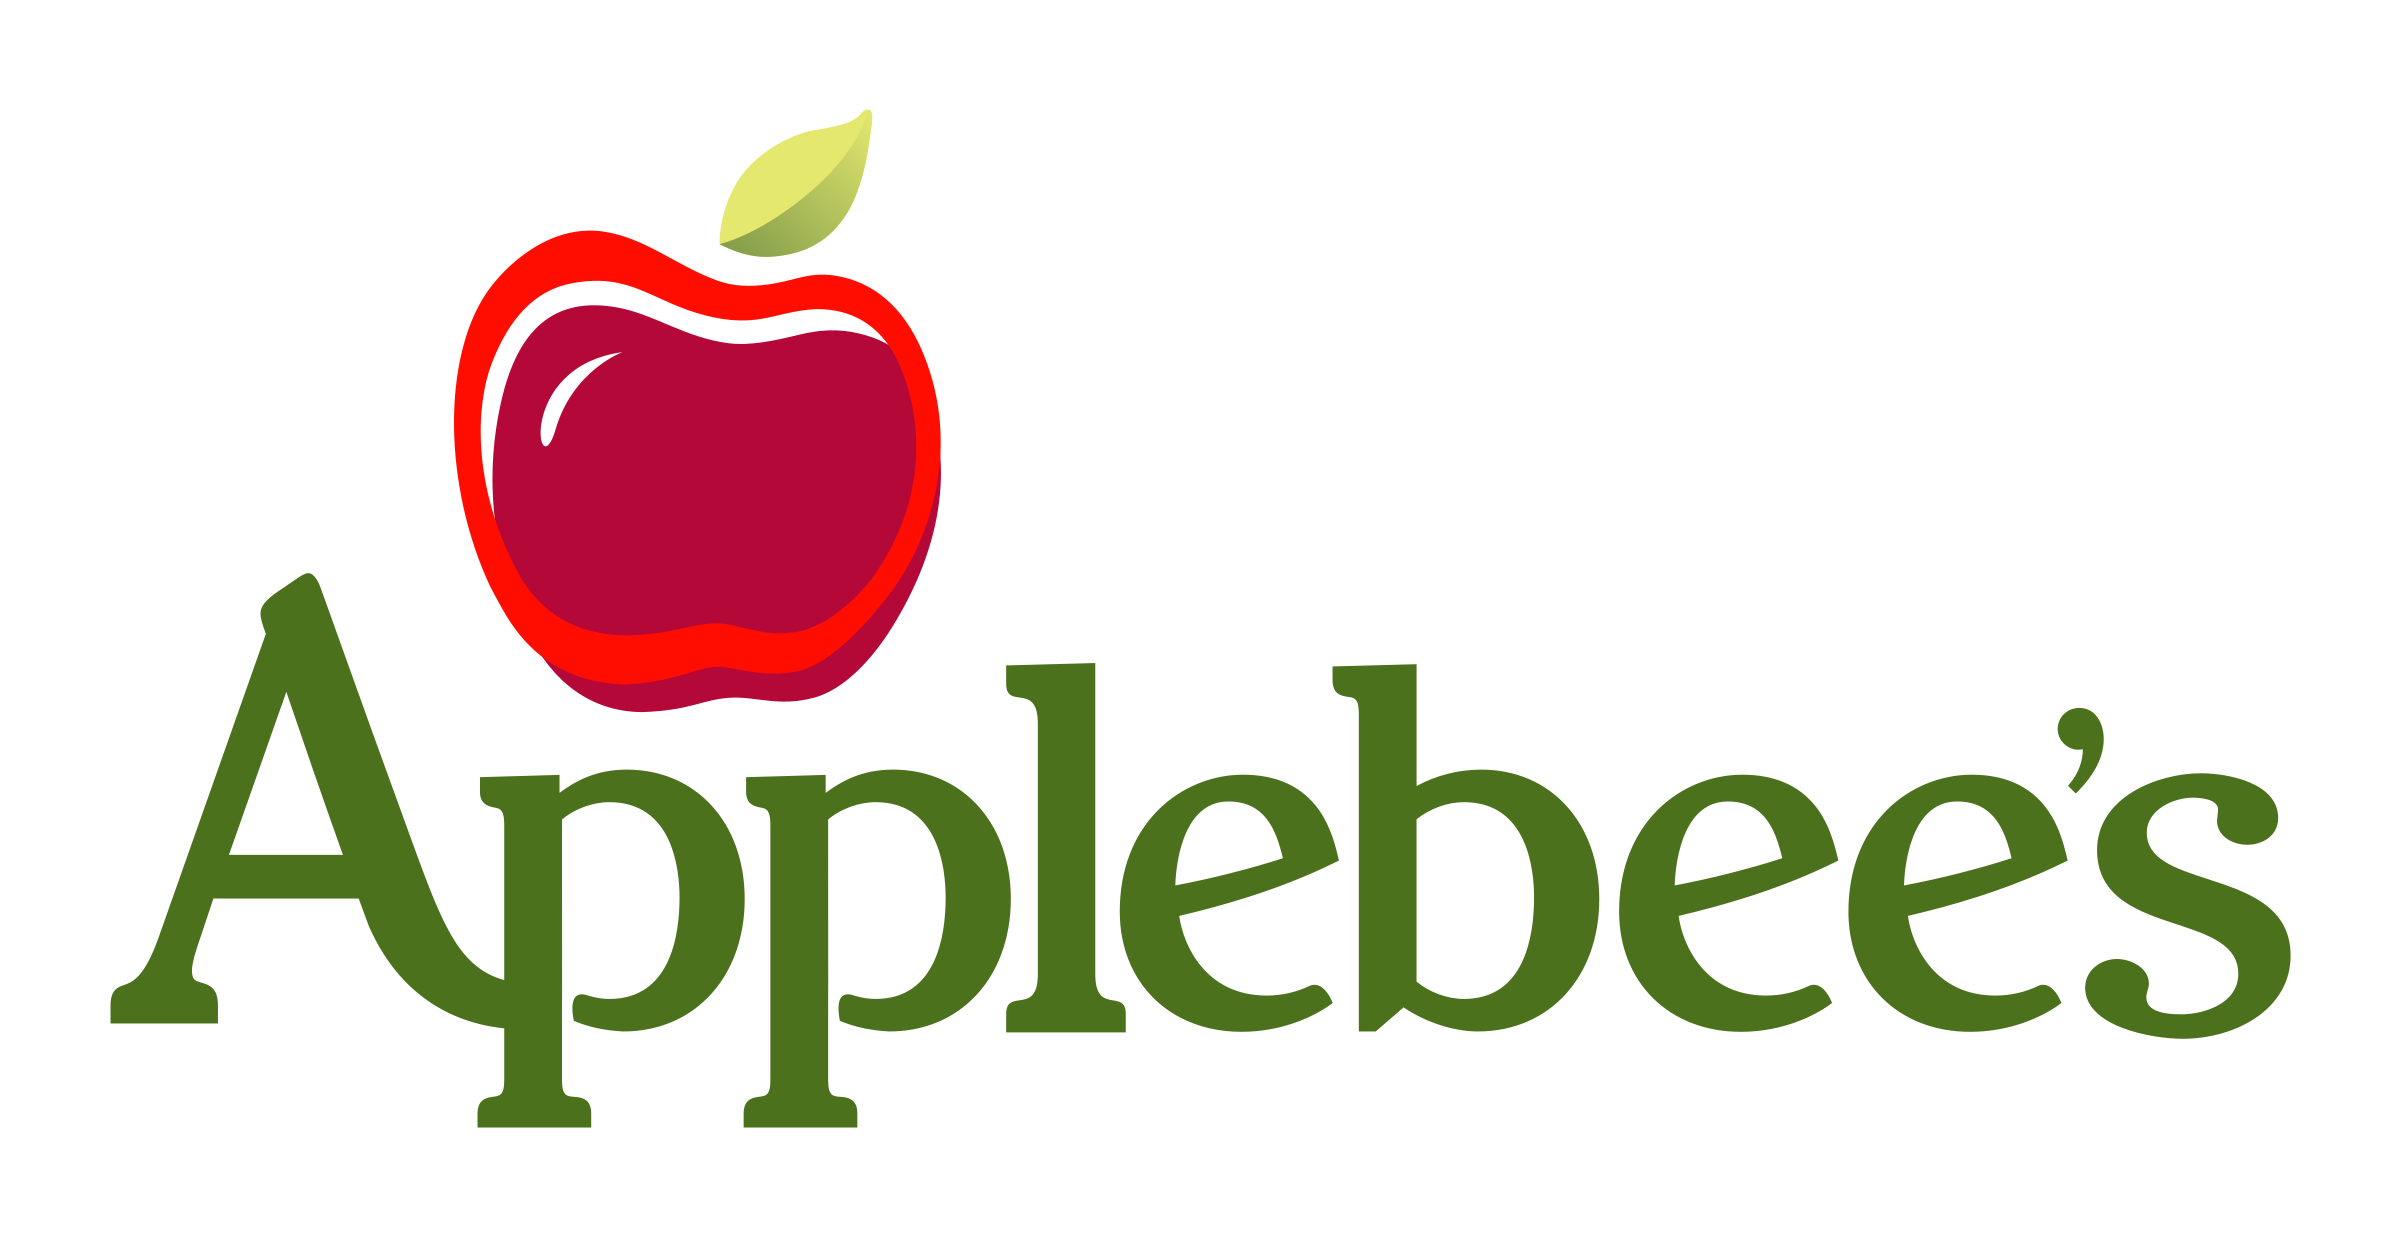 applebees-logo-png-transparent